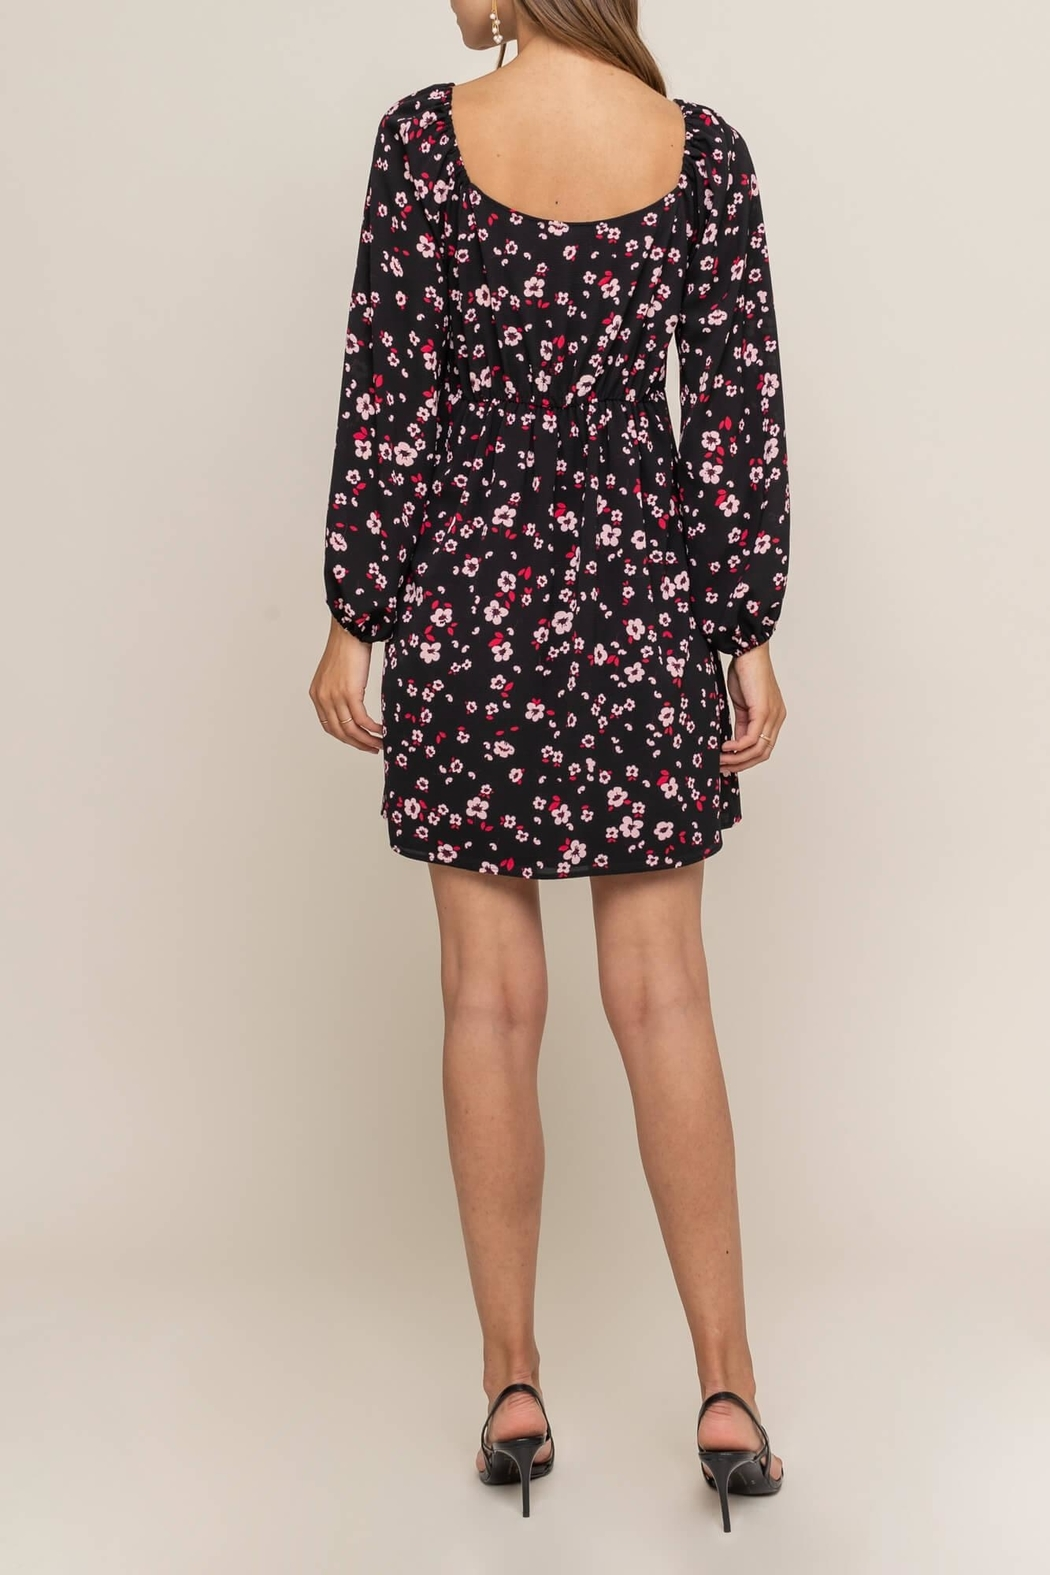 Lush Clothing  Tie Front Floral - Front Full Image